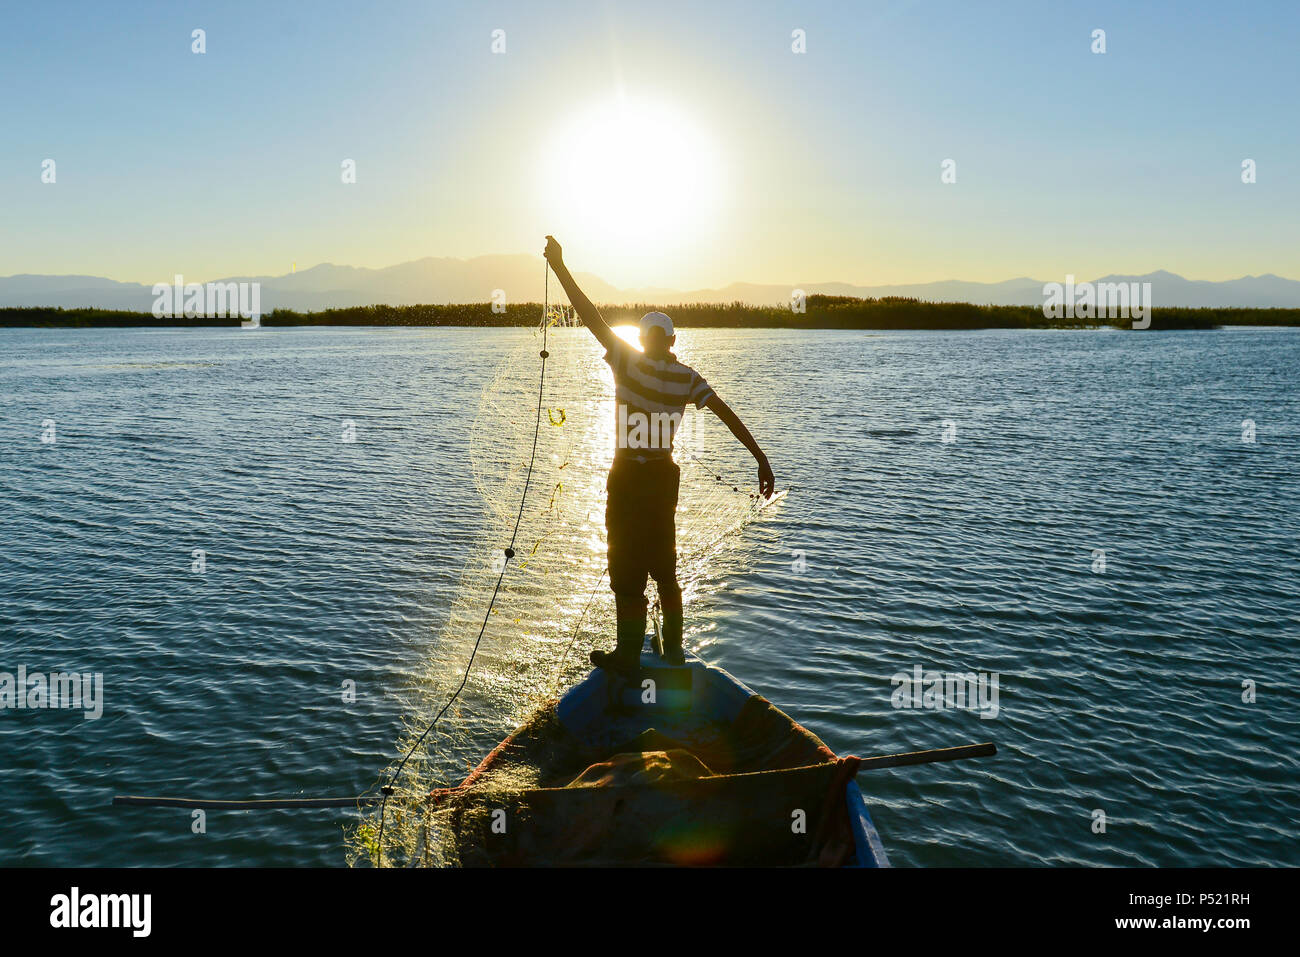 fishing and working hours - Stock Image